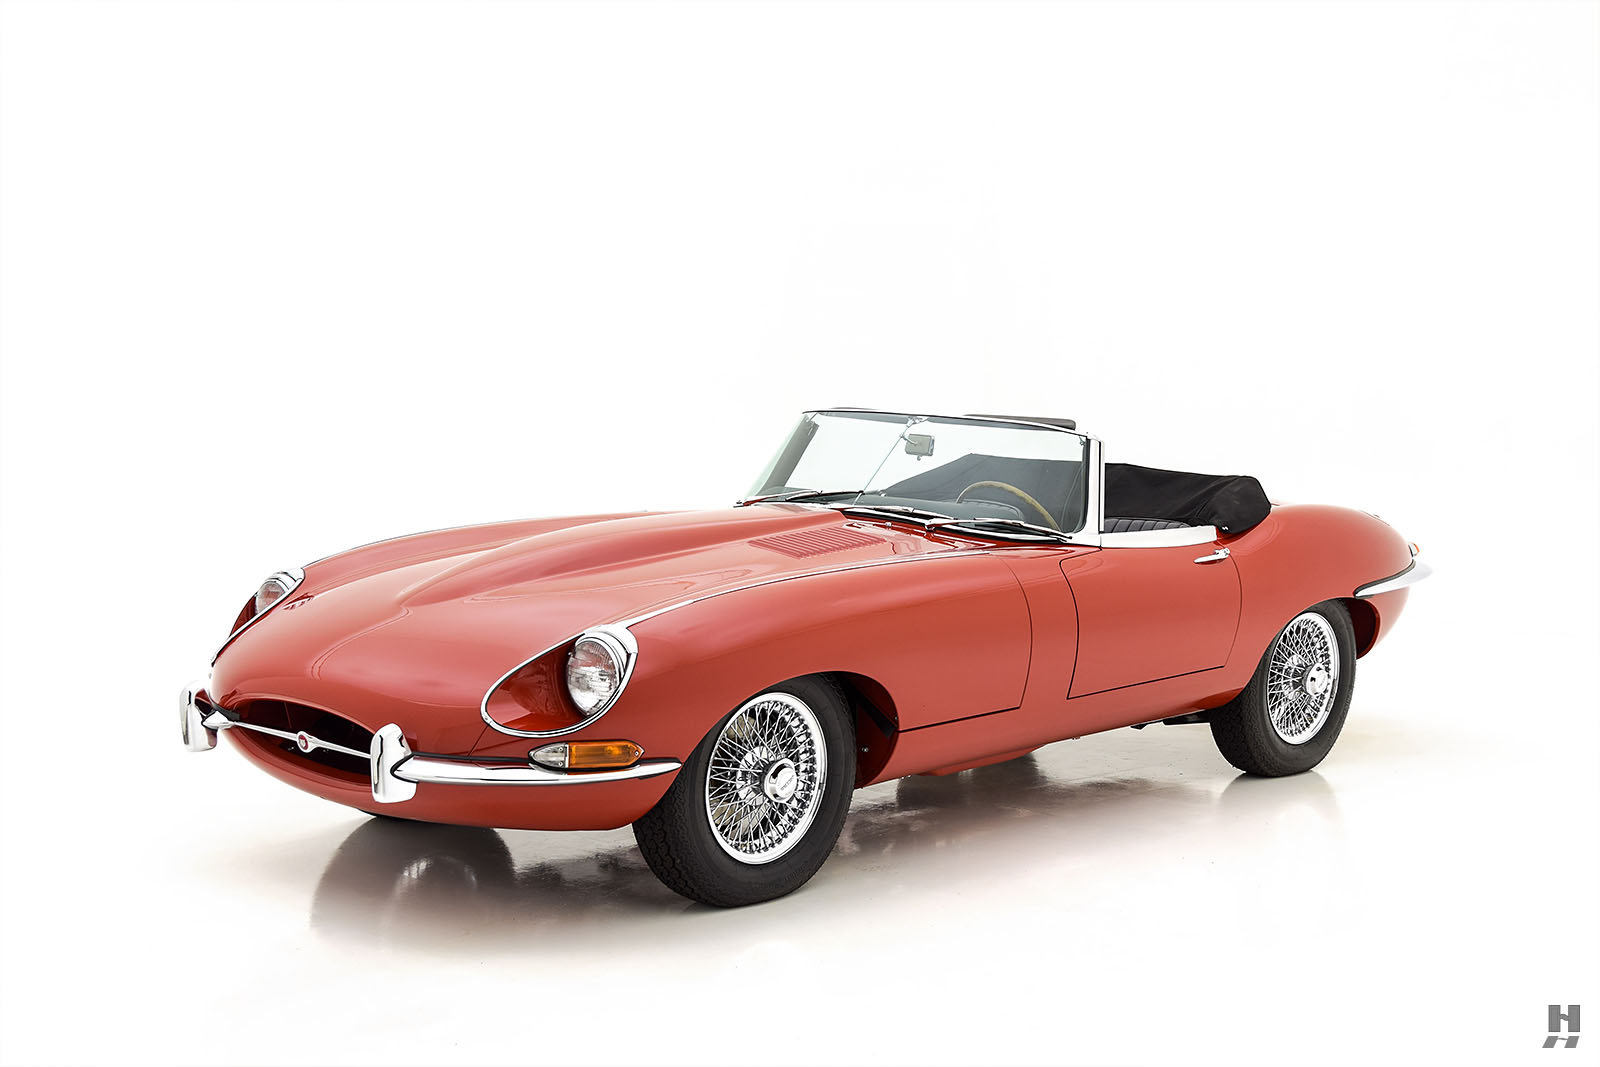 1968 JAGUAR E-TYPE ROADSTER For Sale (picture 1 of 6)